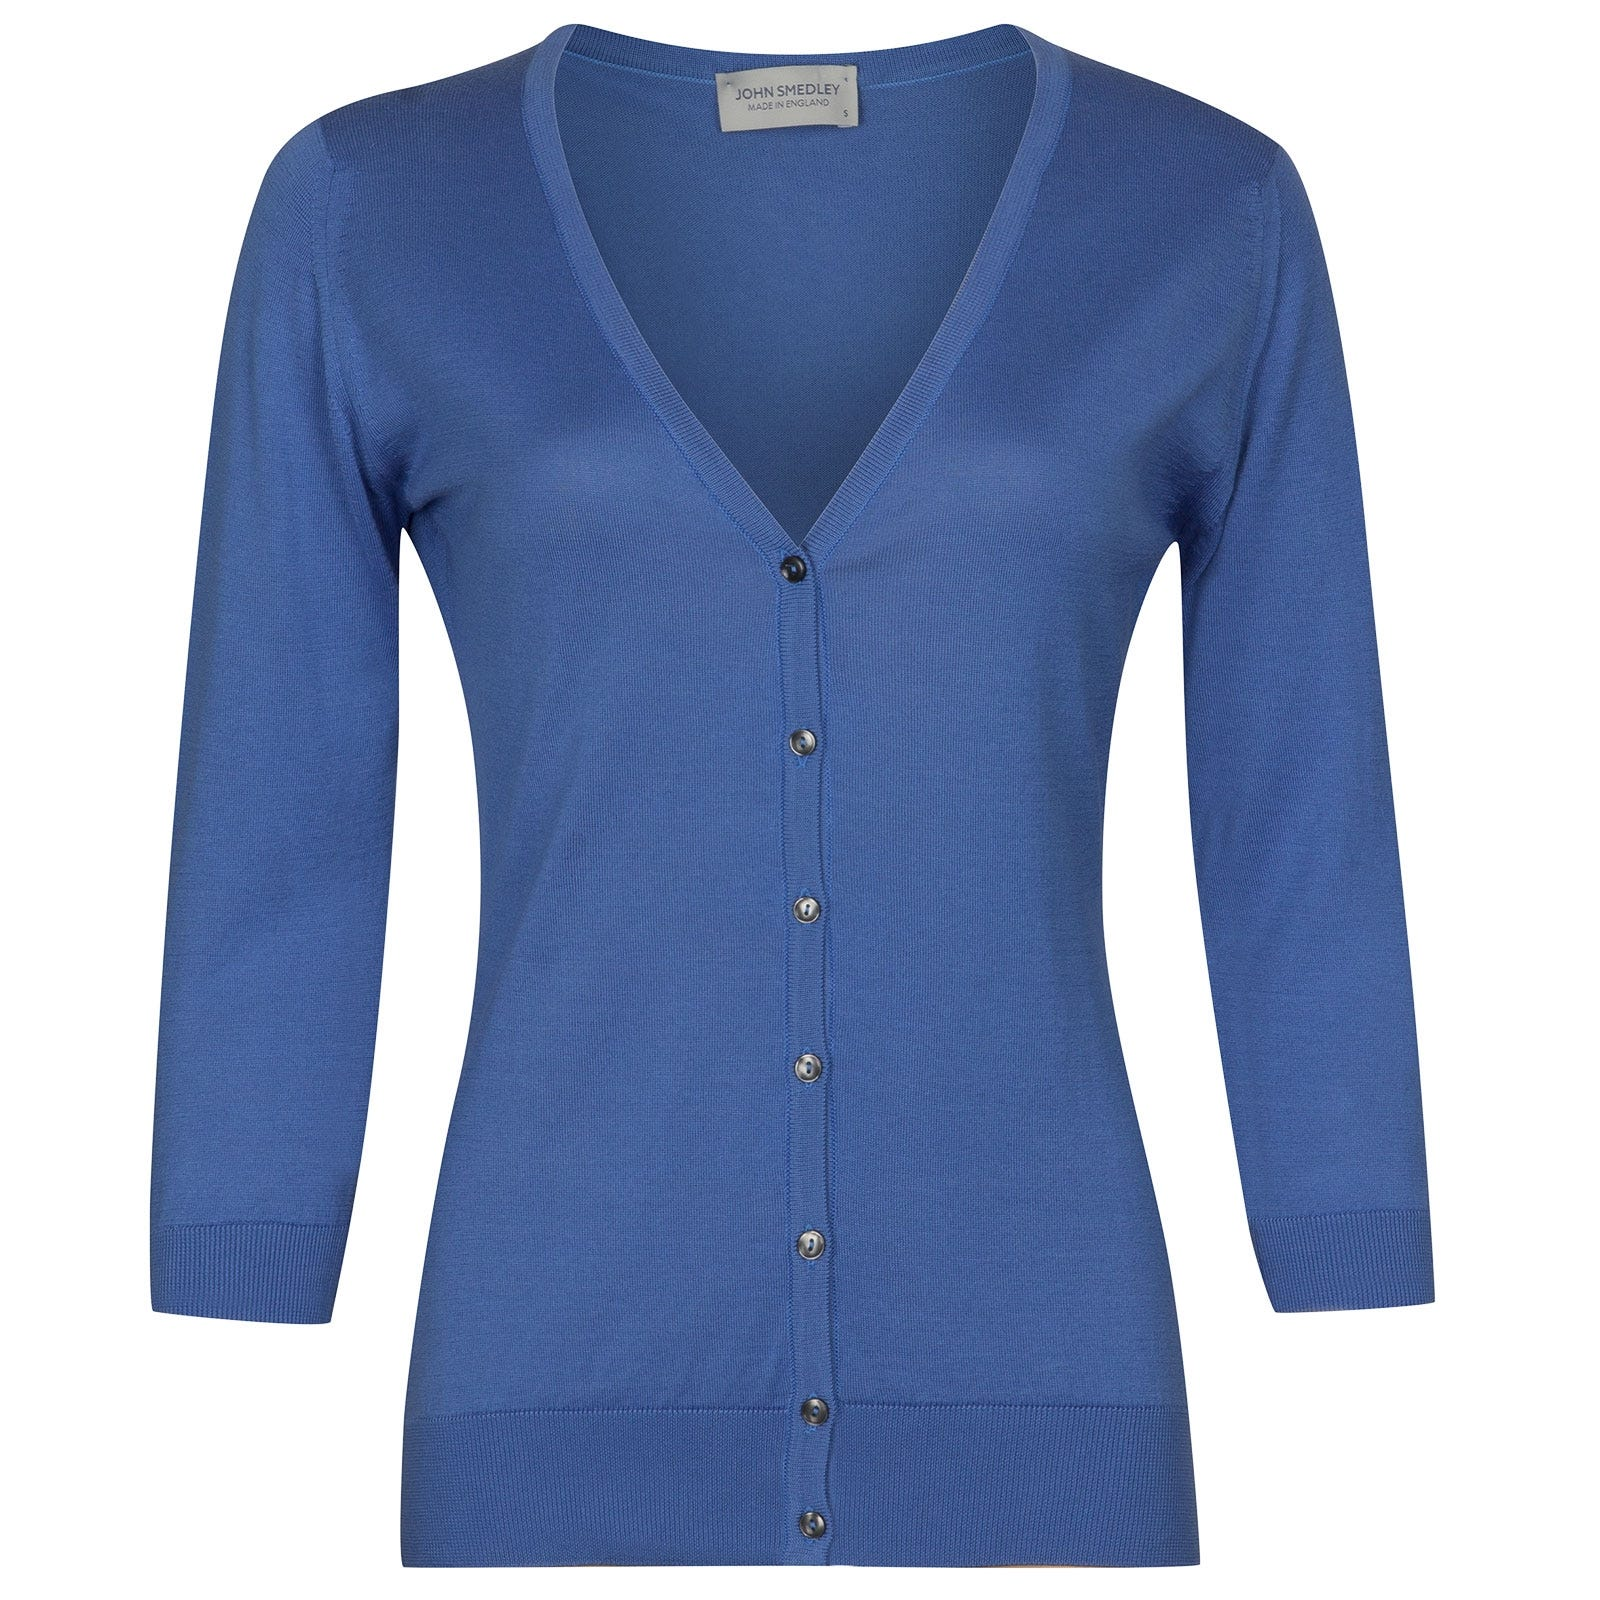 maida-Chambray-blue-M